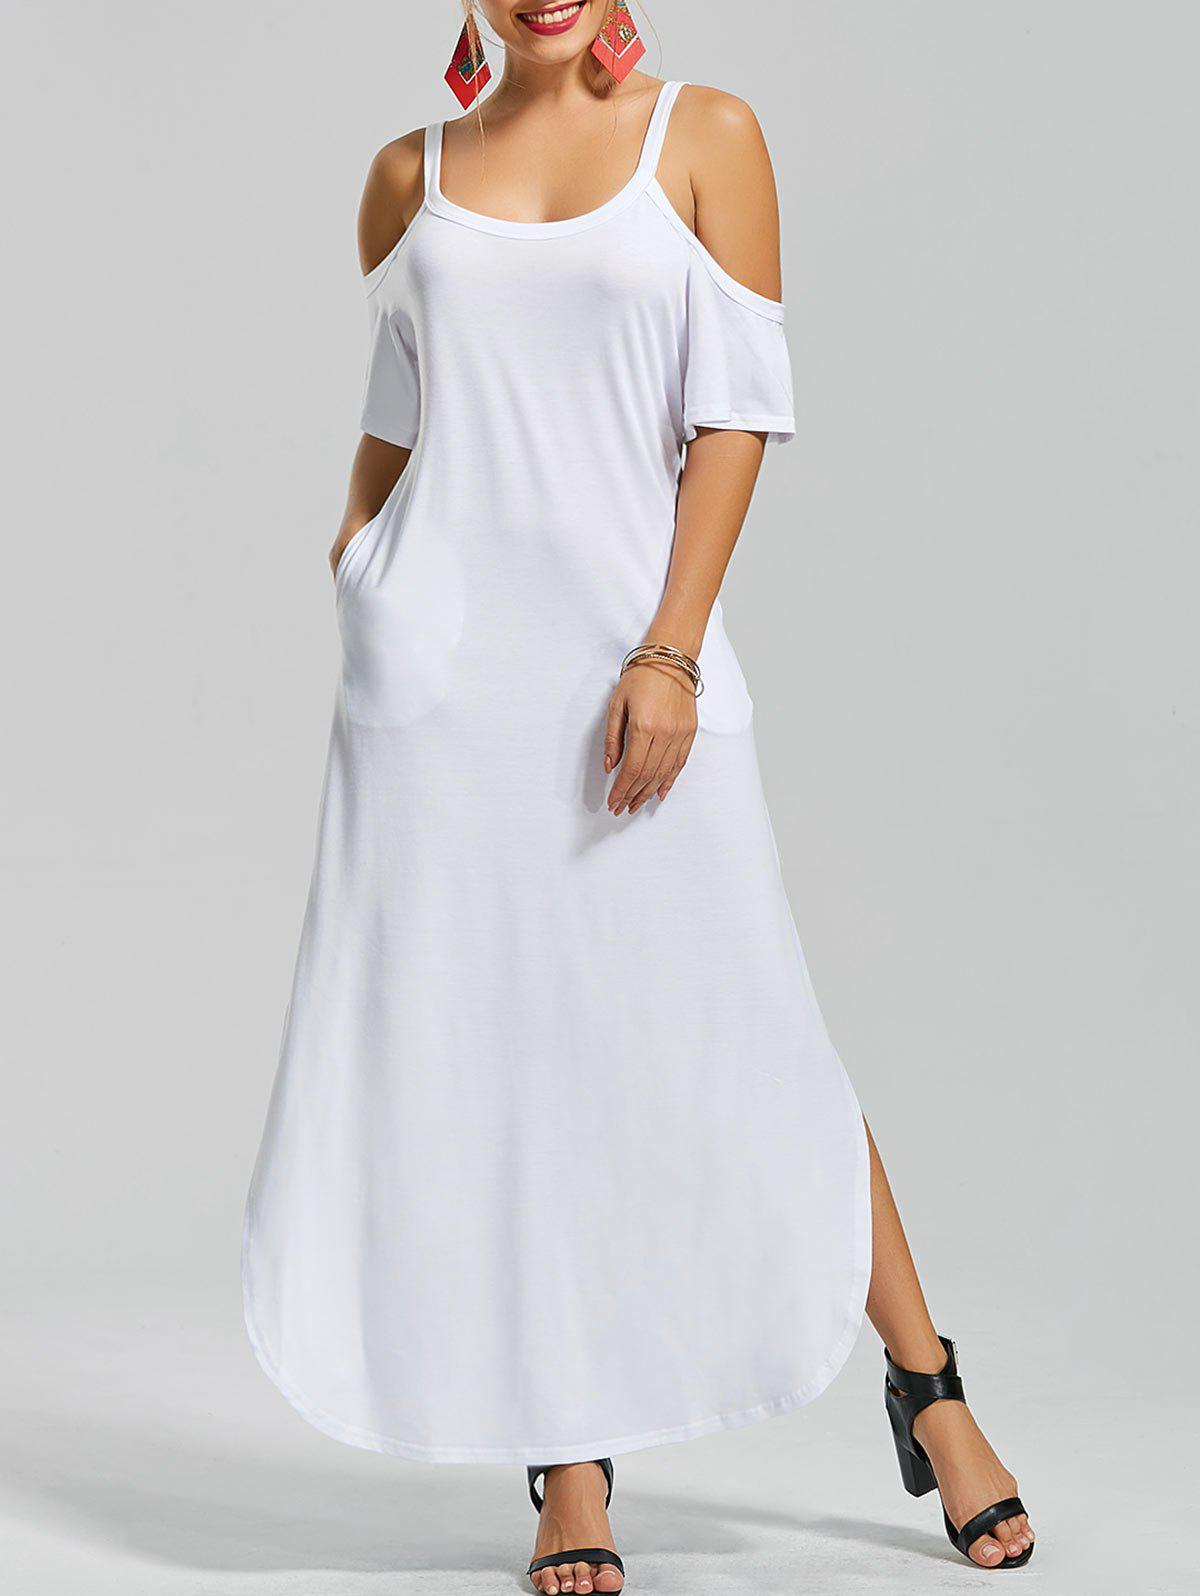 Slit Pockets Maxi Cold Shoulder DressWOMEN<br><br>Size: 2XL; Color: WHITE; Style: Brief; Material: Cotton,Polyester; Silhouette: Straight; Dresses Length: Floor-Length; Neckline: U Neck; Sleeve Length: Half Sleeves; Embellishment: Pockets; Pattern Type: Solid Color; Elasticity: Elastic; With Belt: No; Season: Summer; Weight: 0.4200kg; Package Contents: 1 x Dress;